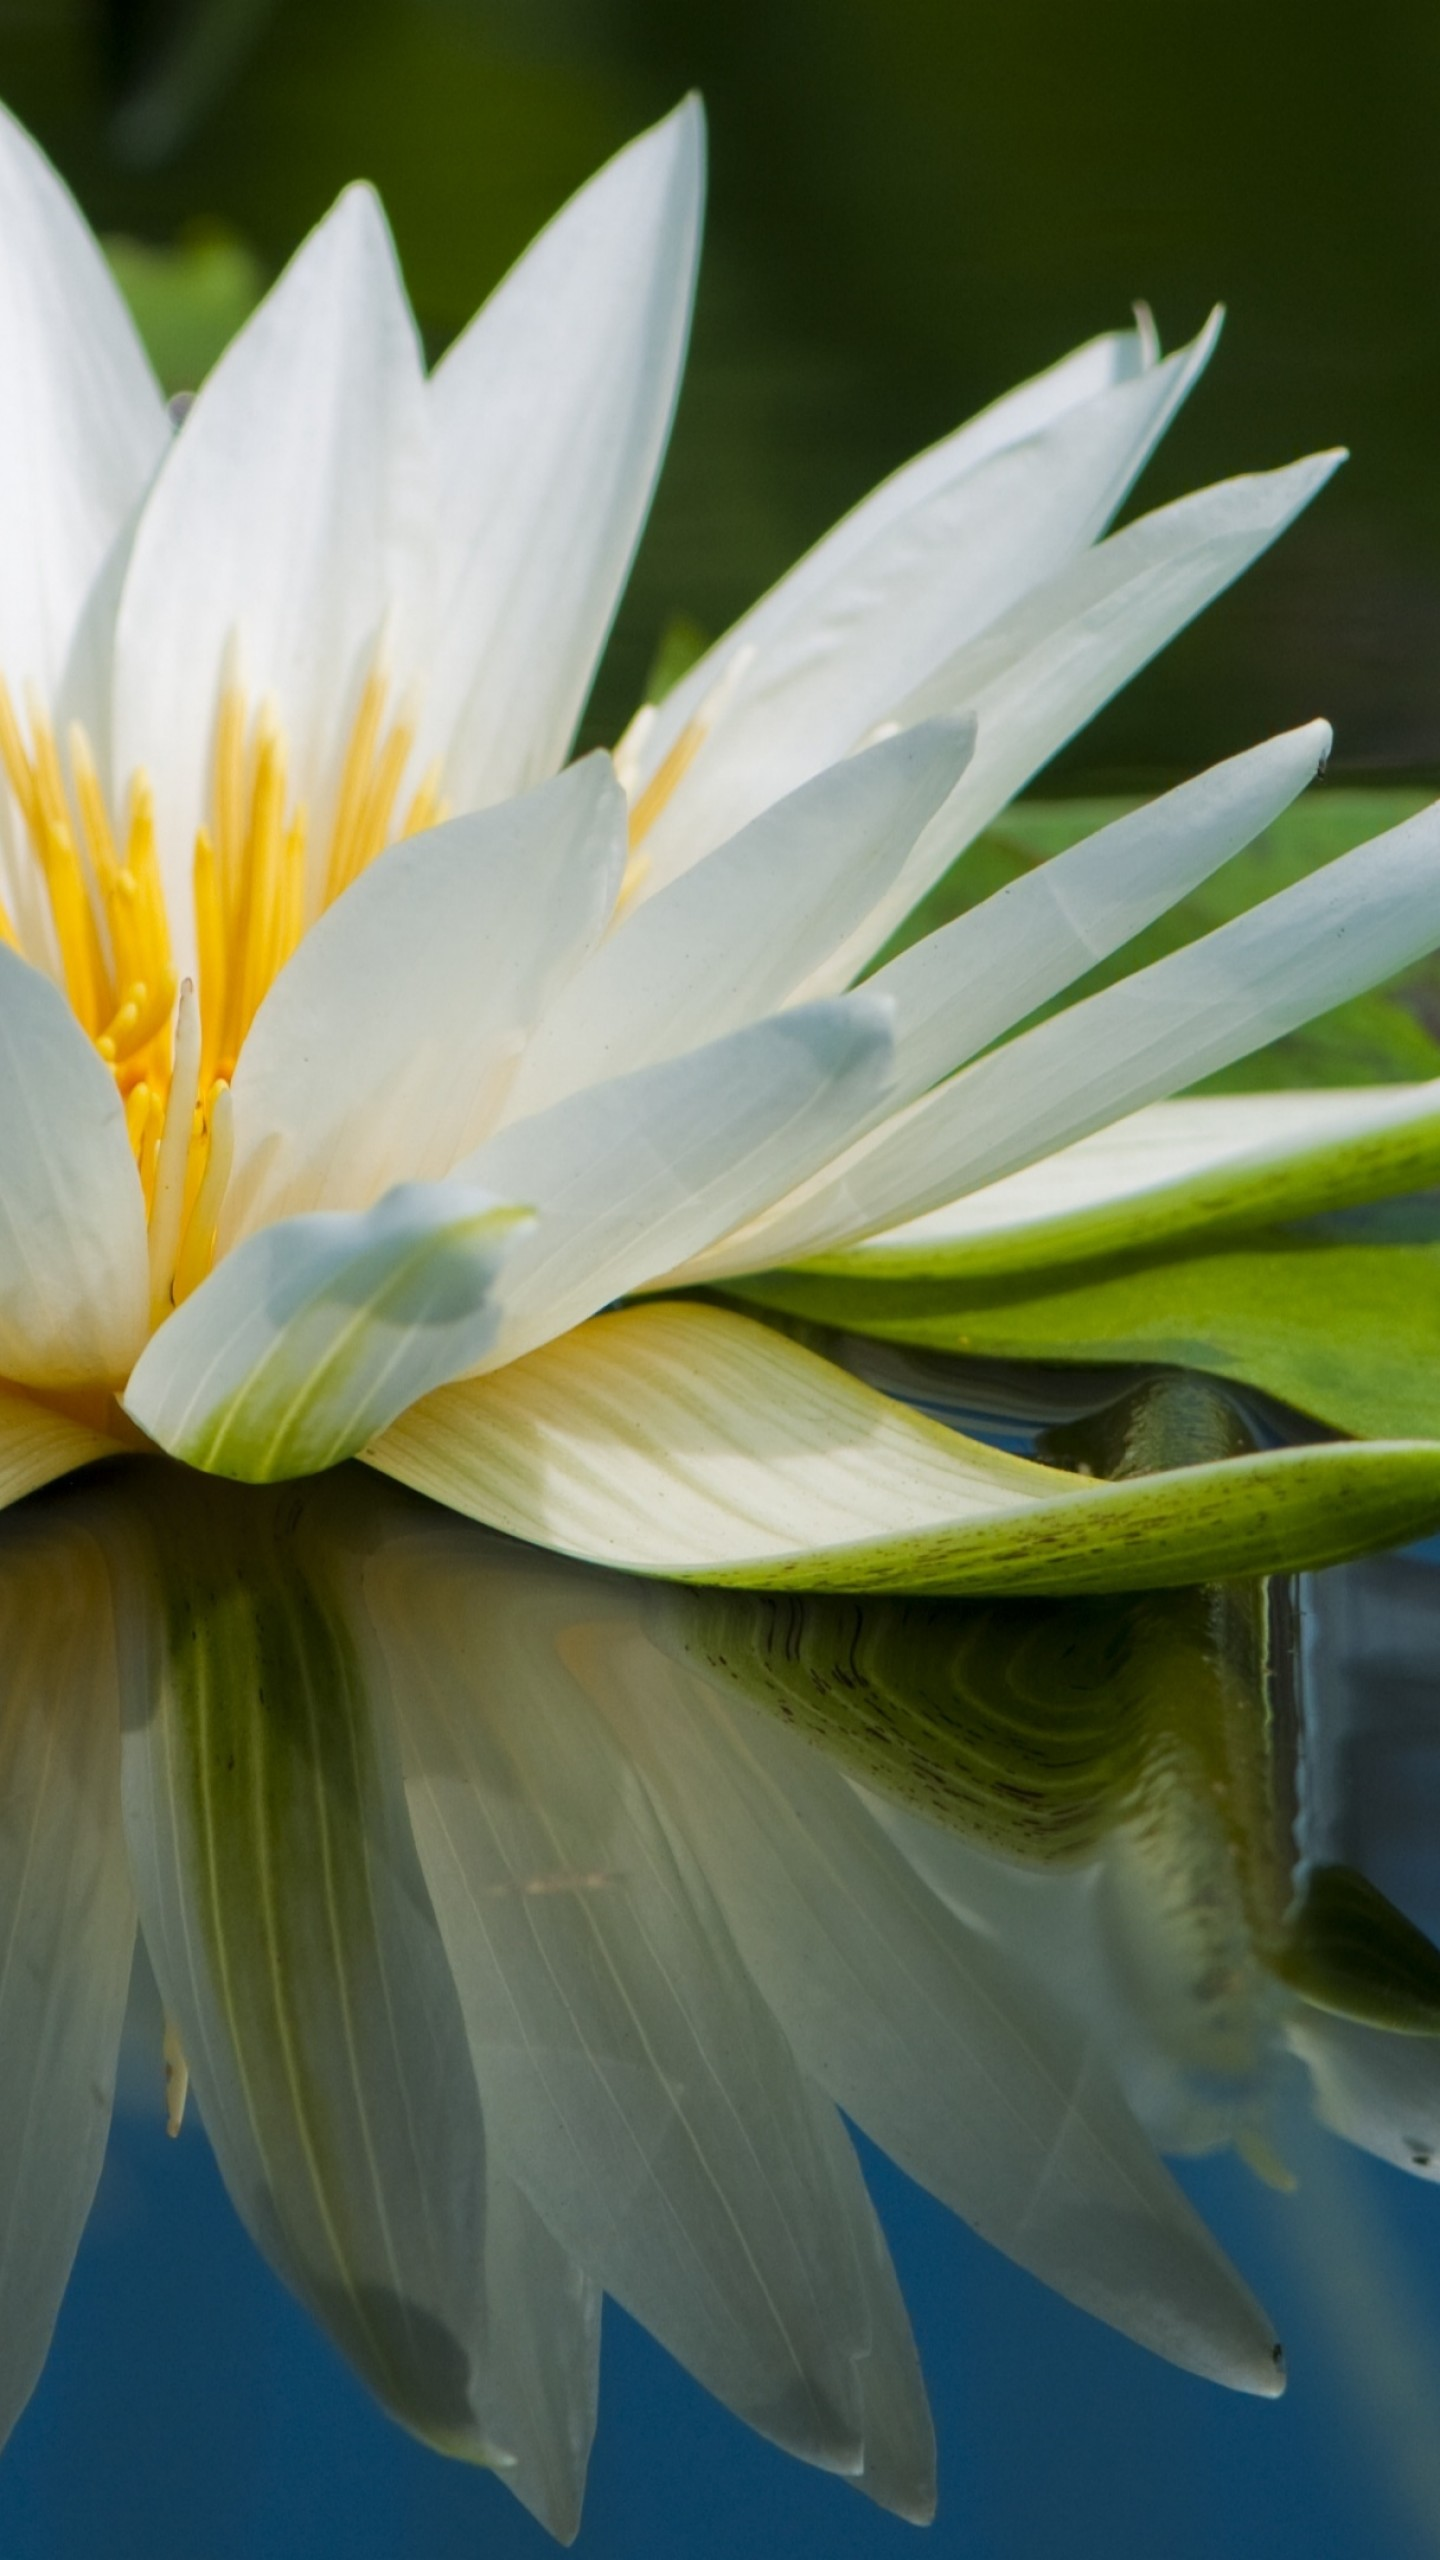 Wallpaper Lotus, 5k, 4k Wallpaper, Flowers, Lake, River